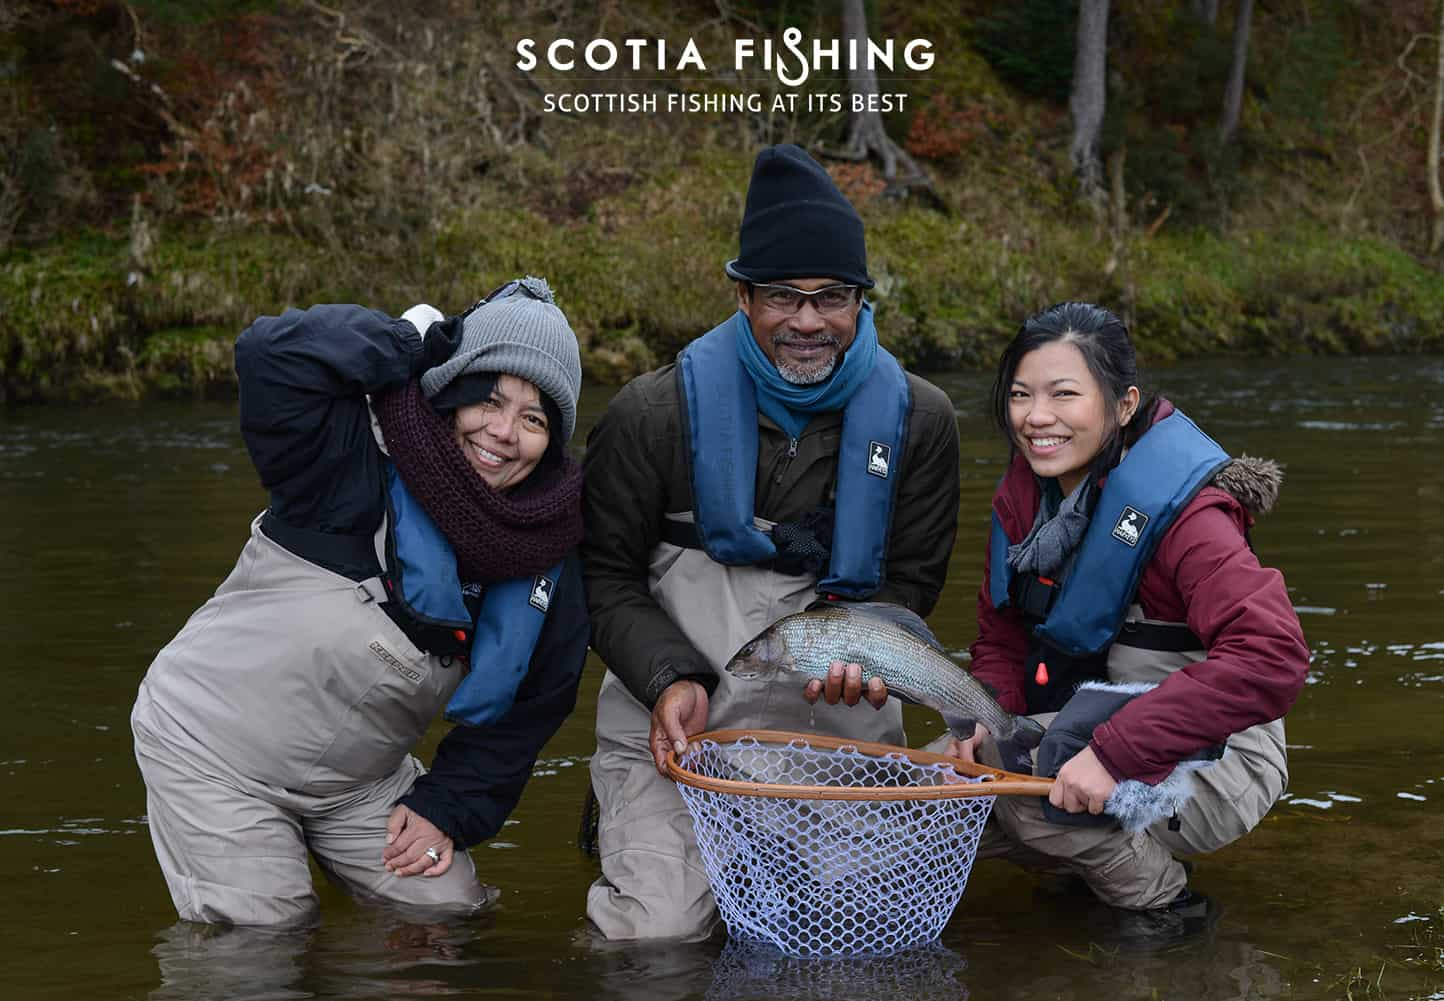 singaporean-fly-fishers-in-scotland